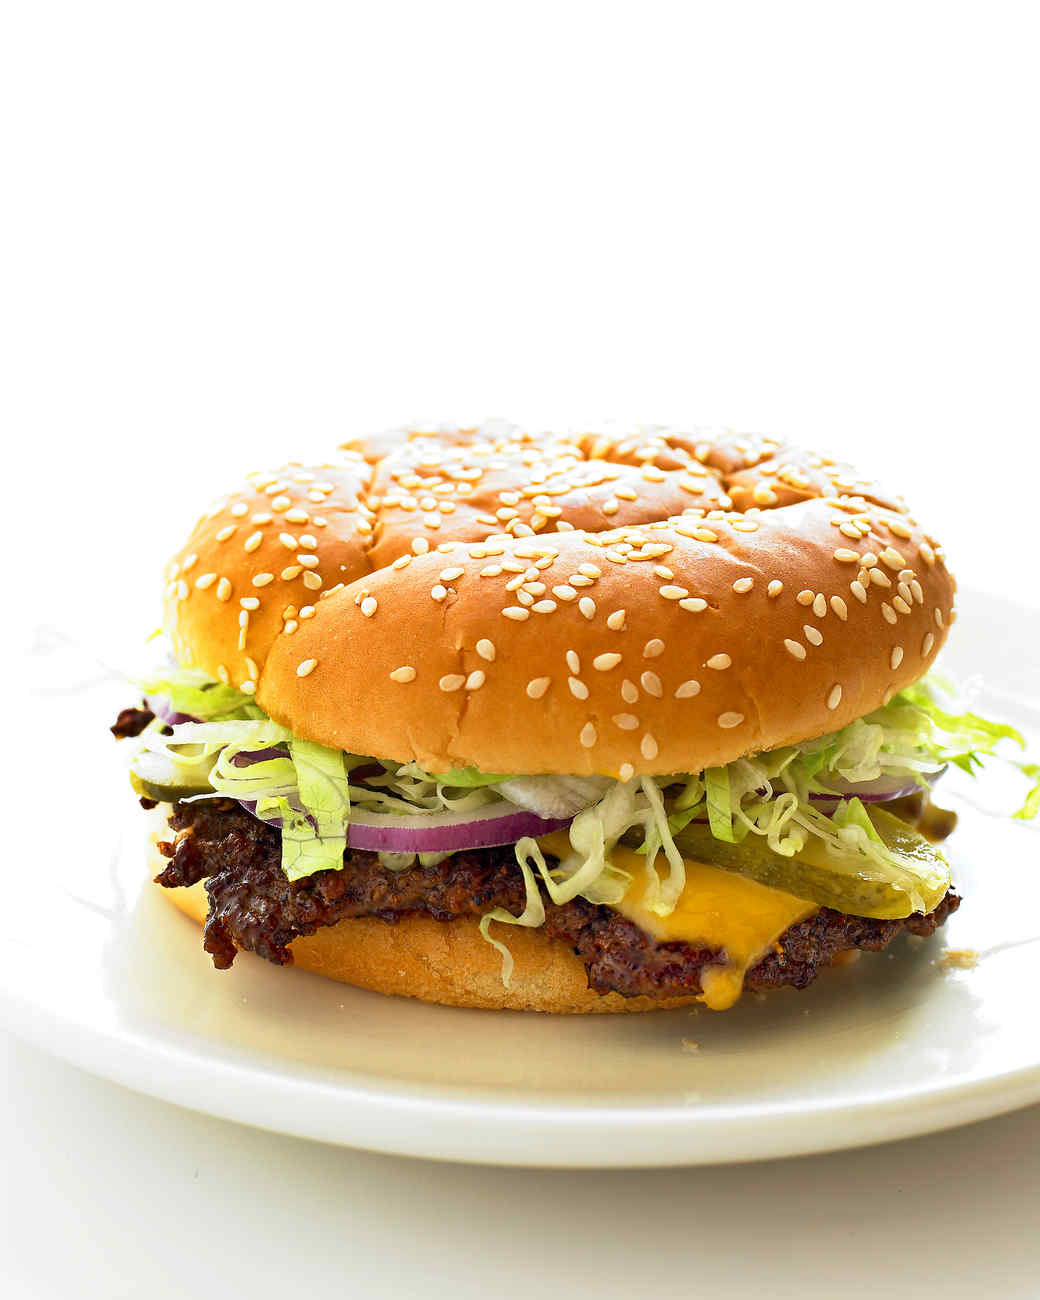 med104695_0609_cheeseburger.jpg